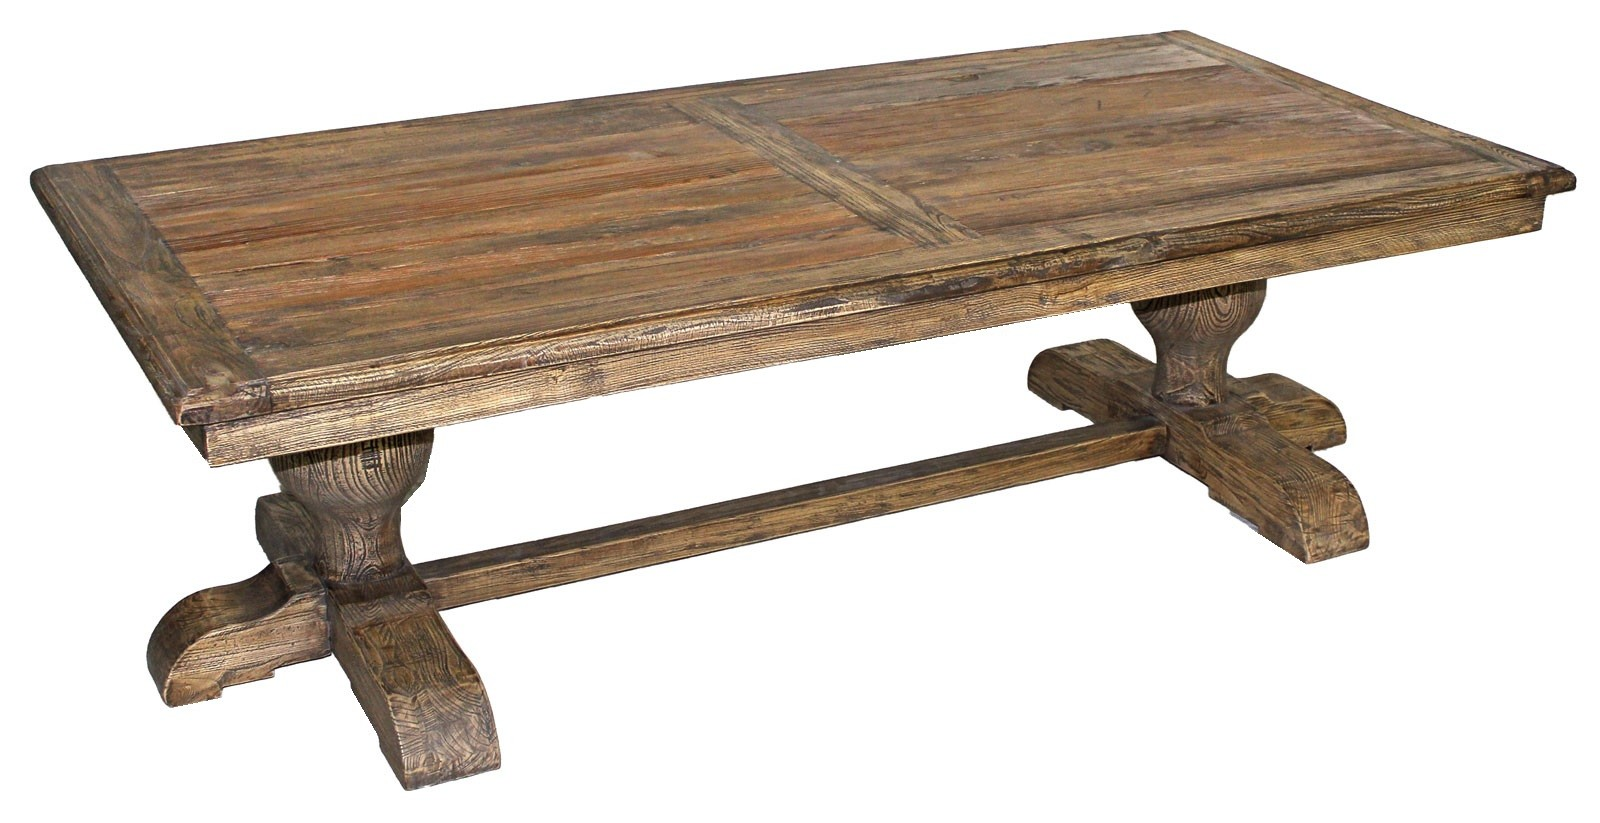 Jj 1635 Reclaimed Elm Coffee Tables